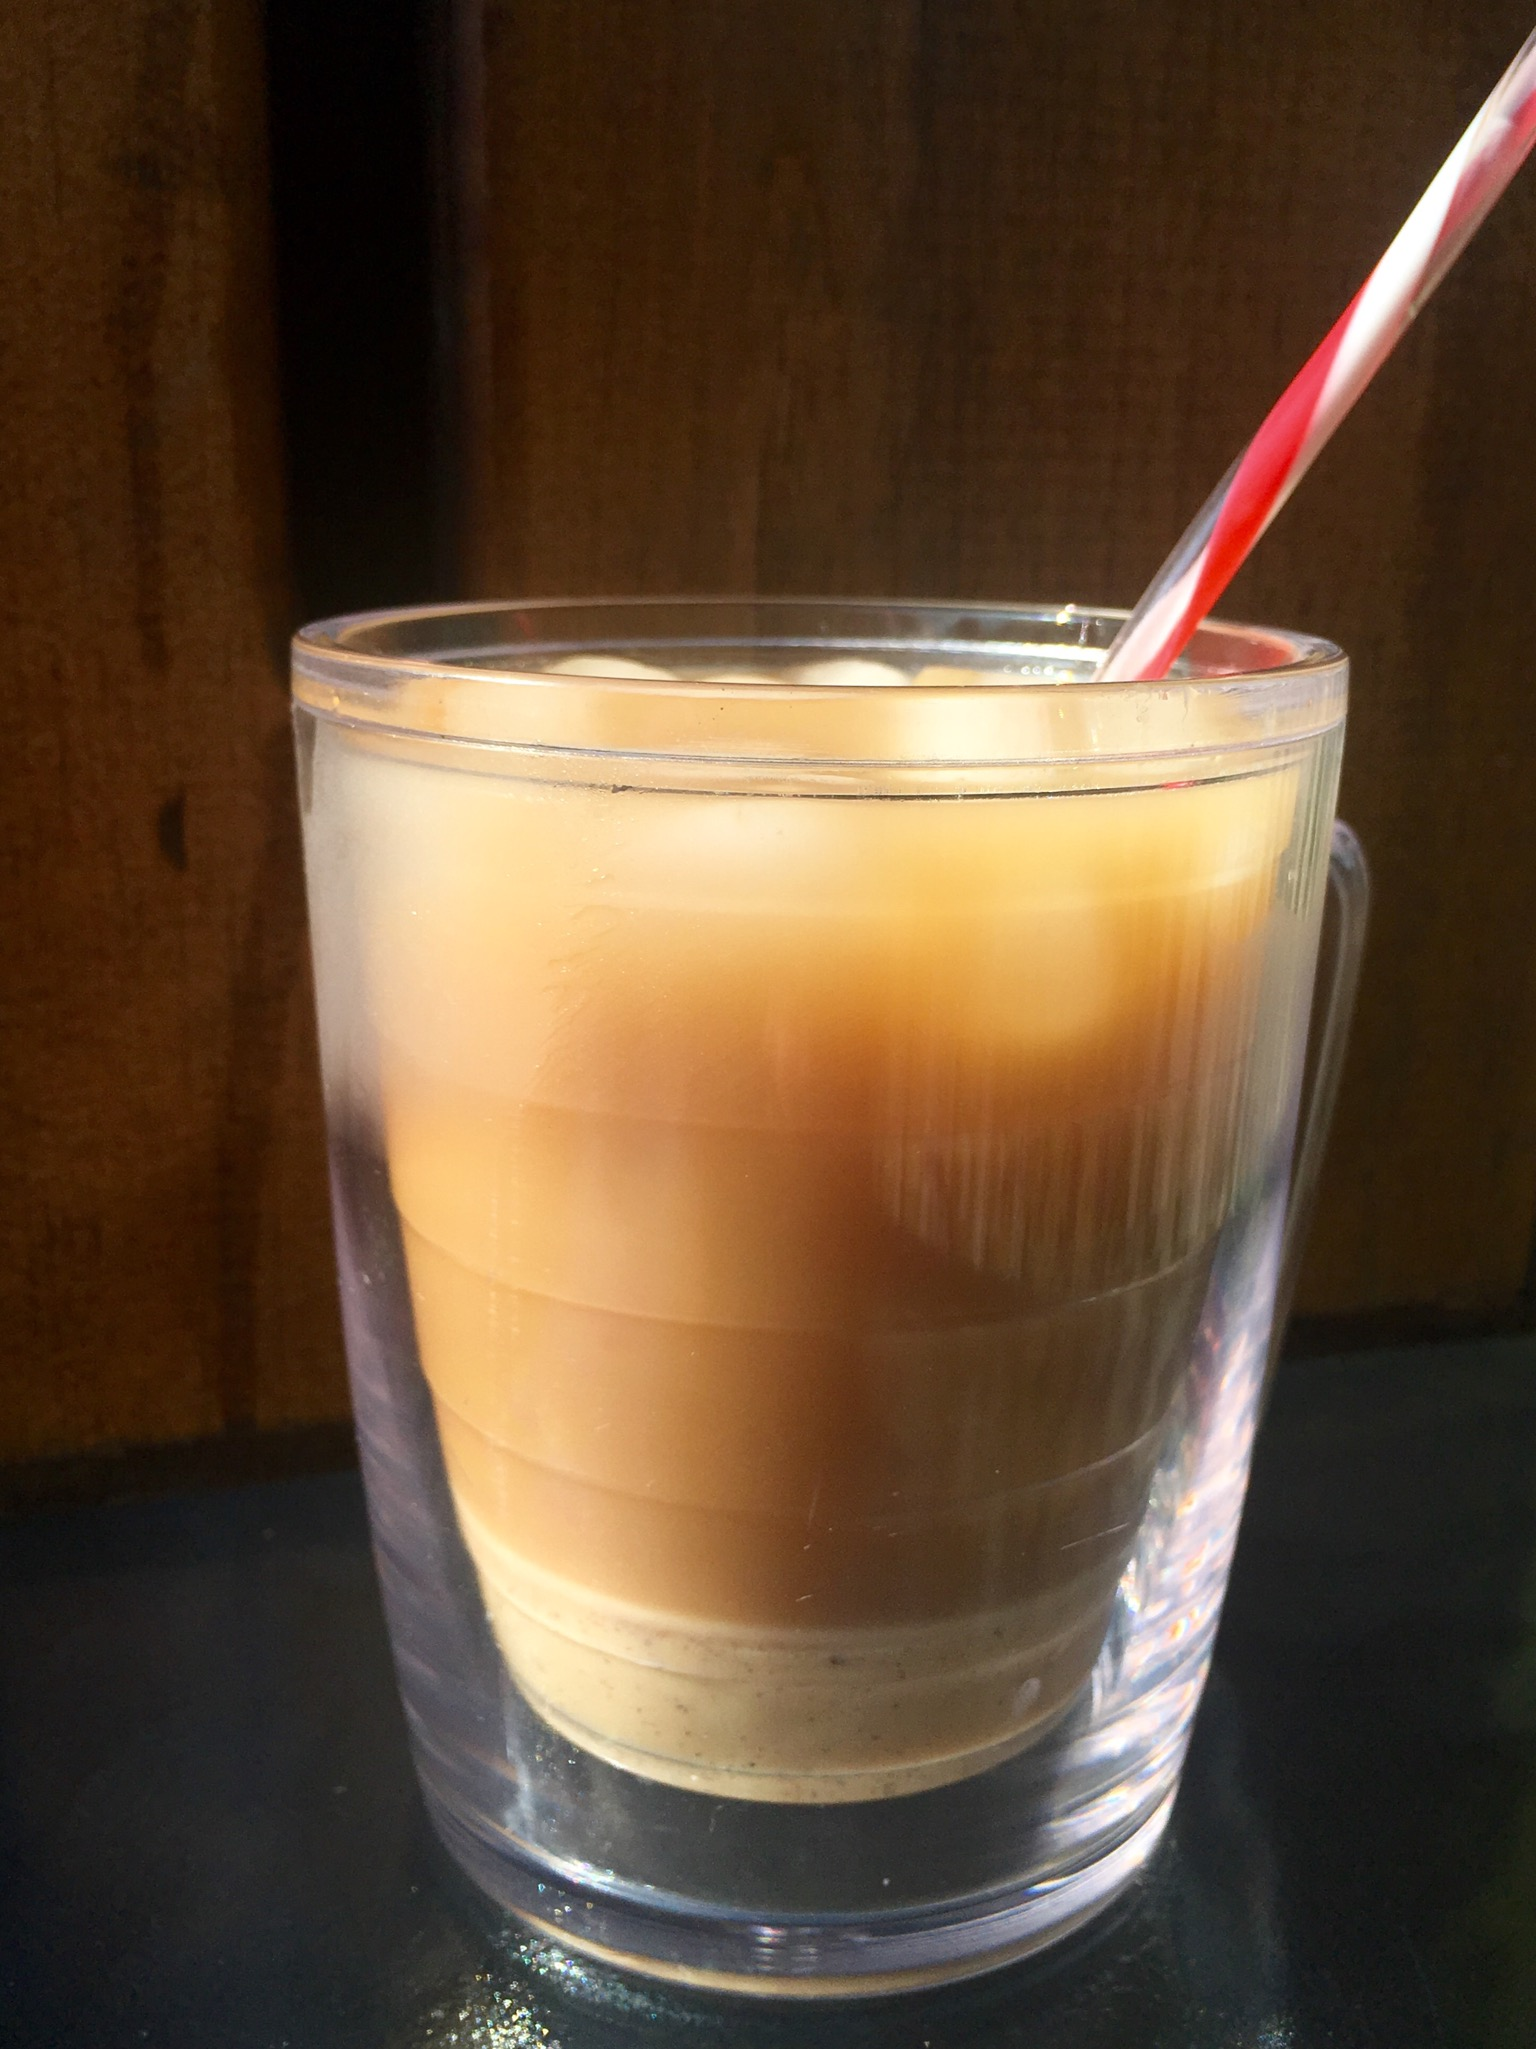 Coffee goes to the next level with spices which warm you up to start the day. Iced Coffee is the perfect tailgate kick off when the weather is warm.